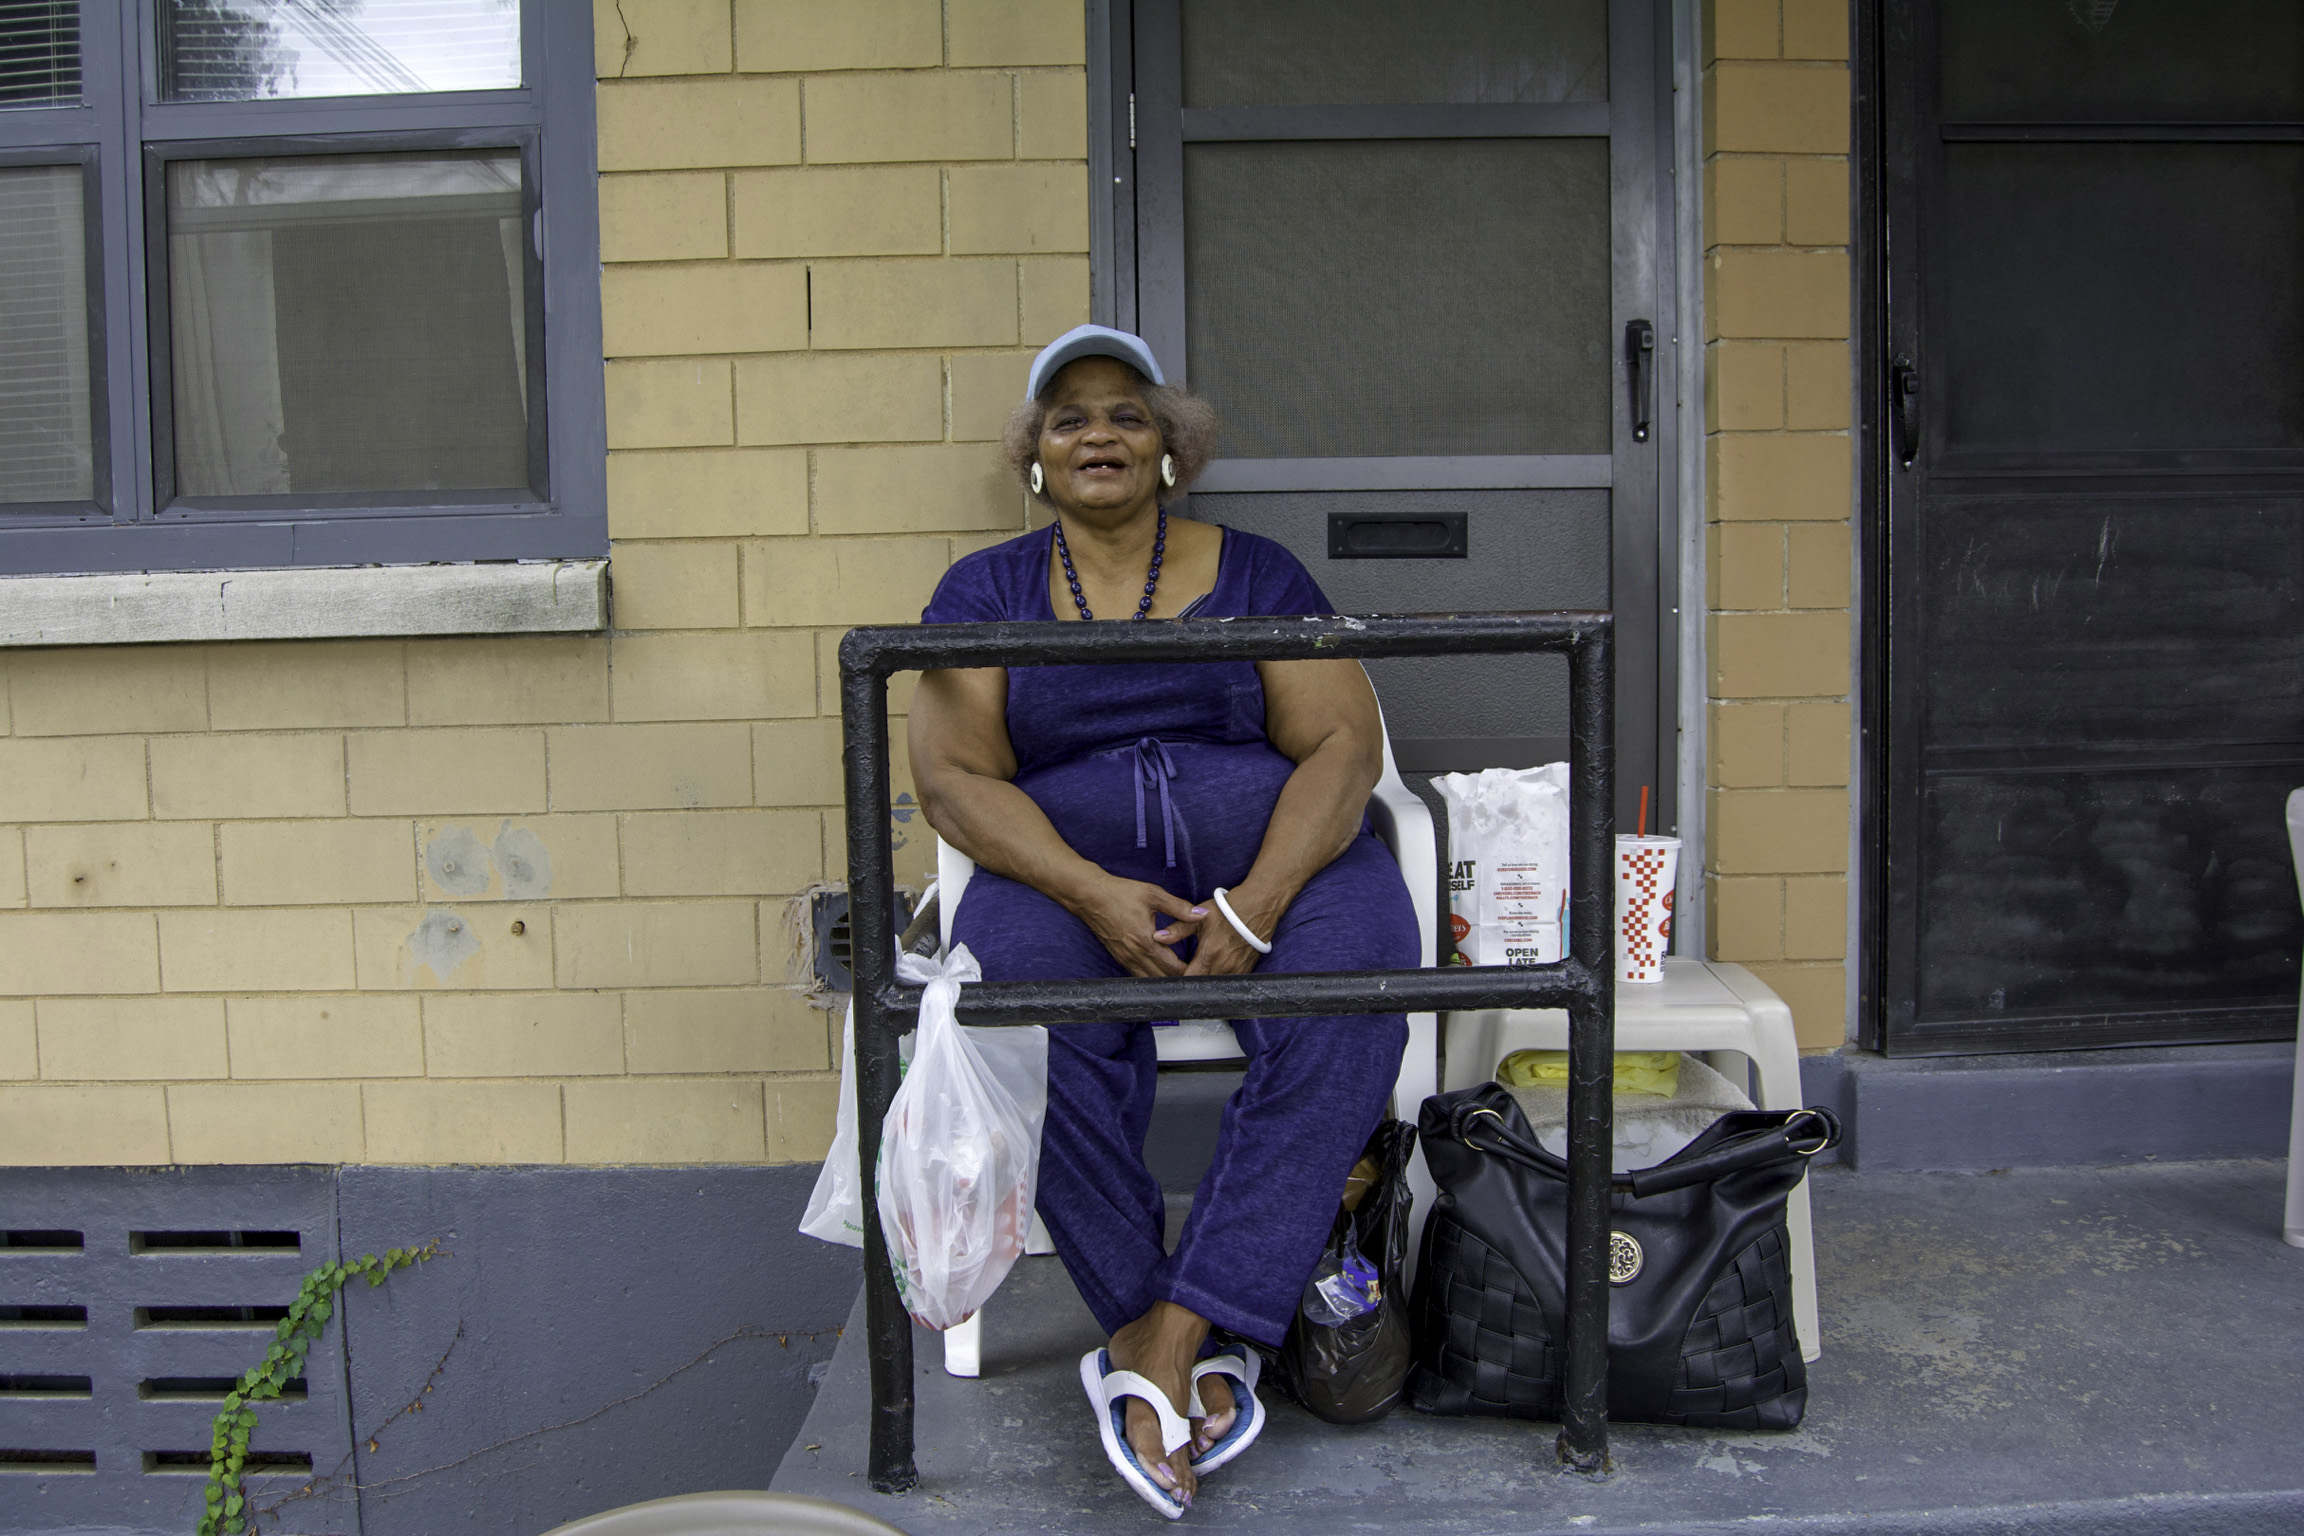 """""""I've been in Park Hill for almost twenty-six years. It'll be twenty-six years in October. So, I've been here for a while. I'm kind of ill, so I just hang out around here. I love going to church but I haven't been able to attend lately. Now, I just listen to it on my radio but when I start feeling better, I'll make it back in there. I have arthritis in my legs and it's been going on for some years. It keeps me from doing a lot of moving.  With all of this going on, I've started to enjoy reading. I've learned how to read better. It makes me really want to go back to school. It's never too late, you know. Things were just going on, in my life, that kept me from going back to school. I feel like I can really do it and see myself reach my goals."""" - Carolyn, Park Hill"""